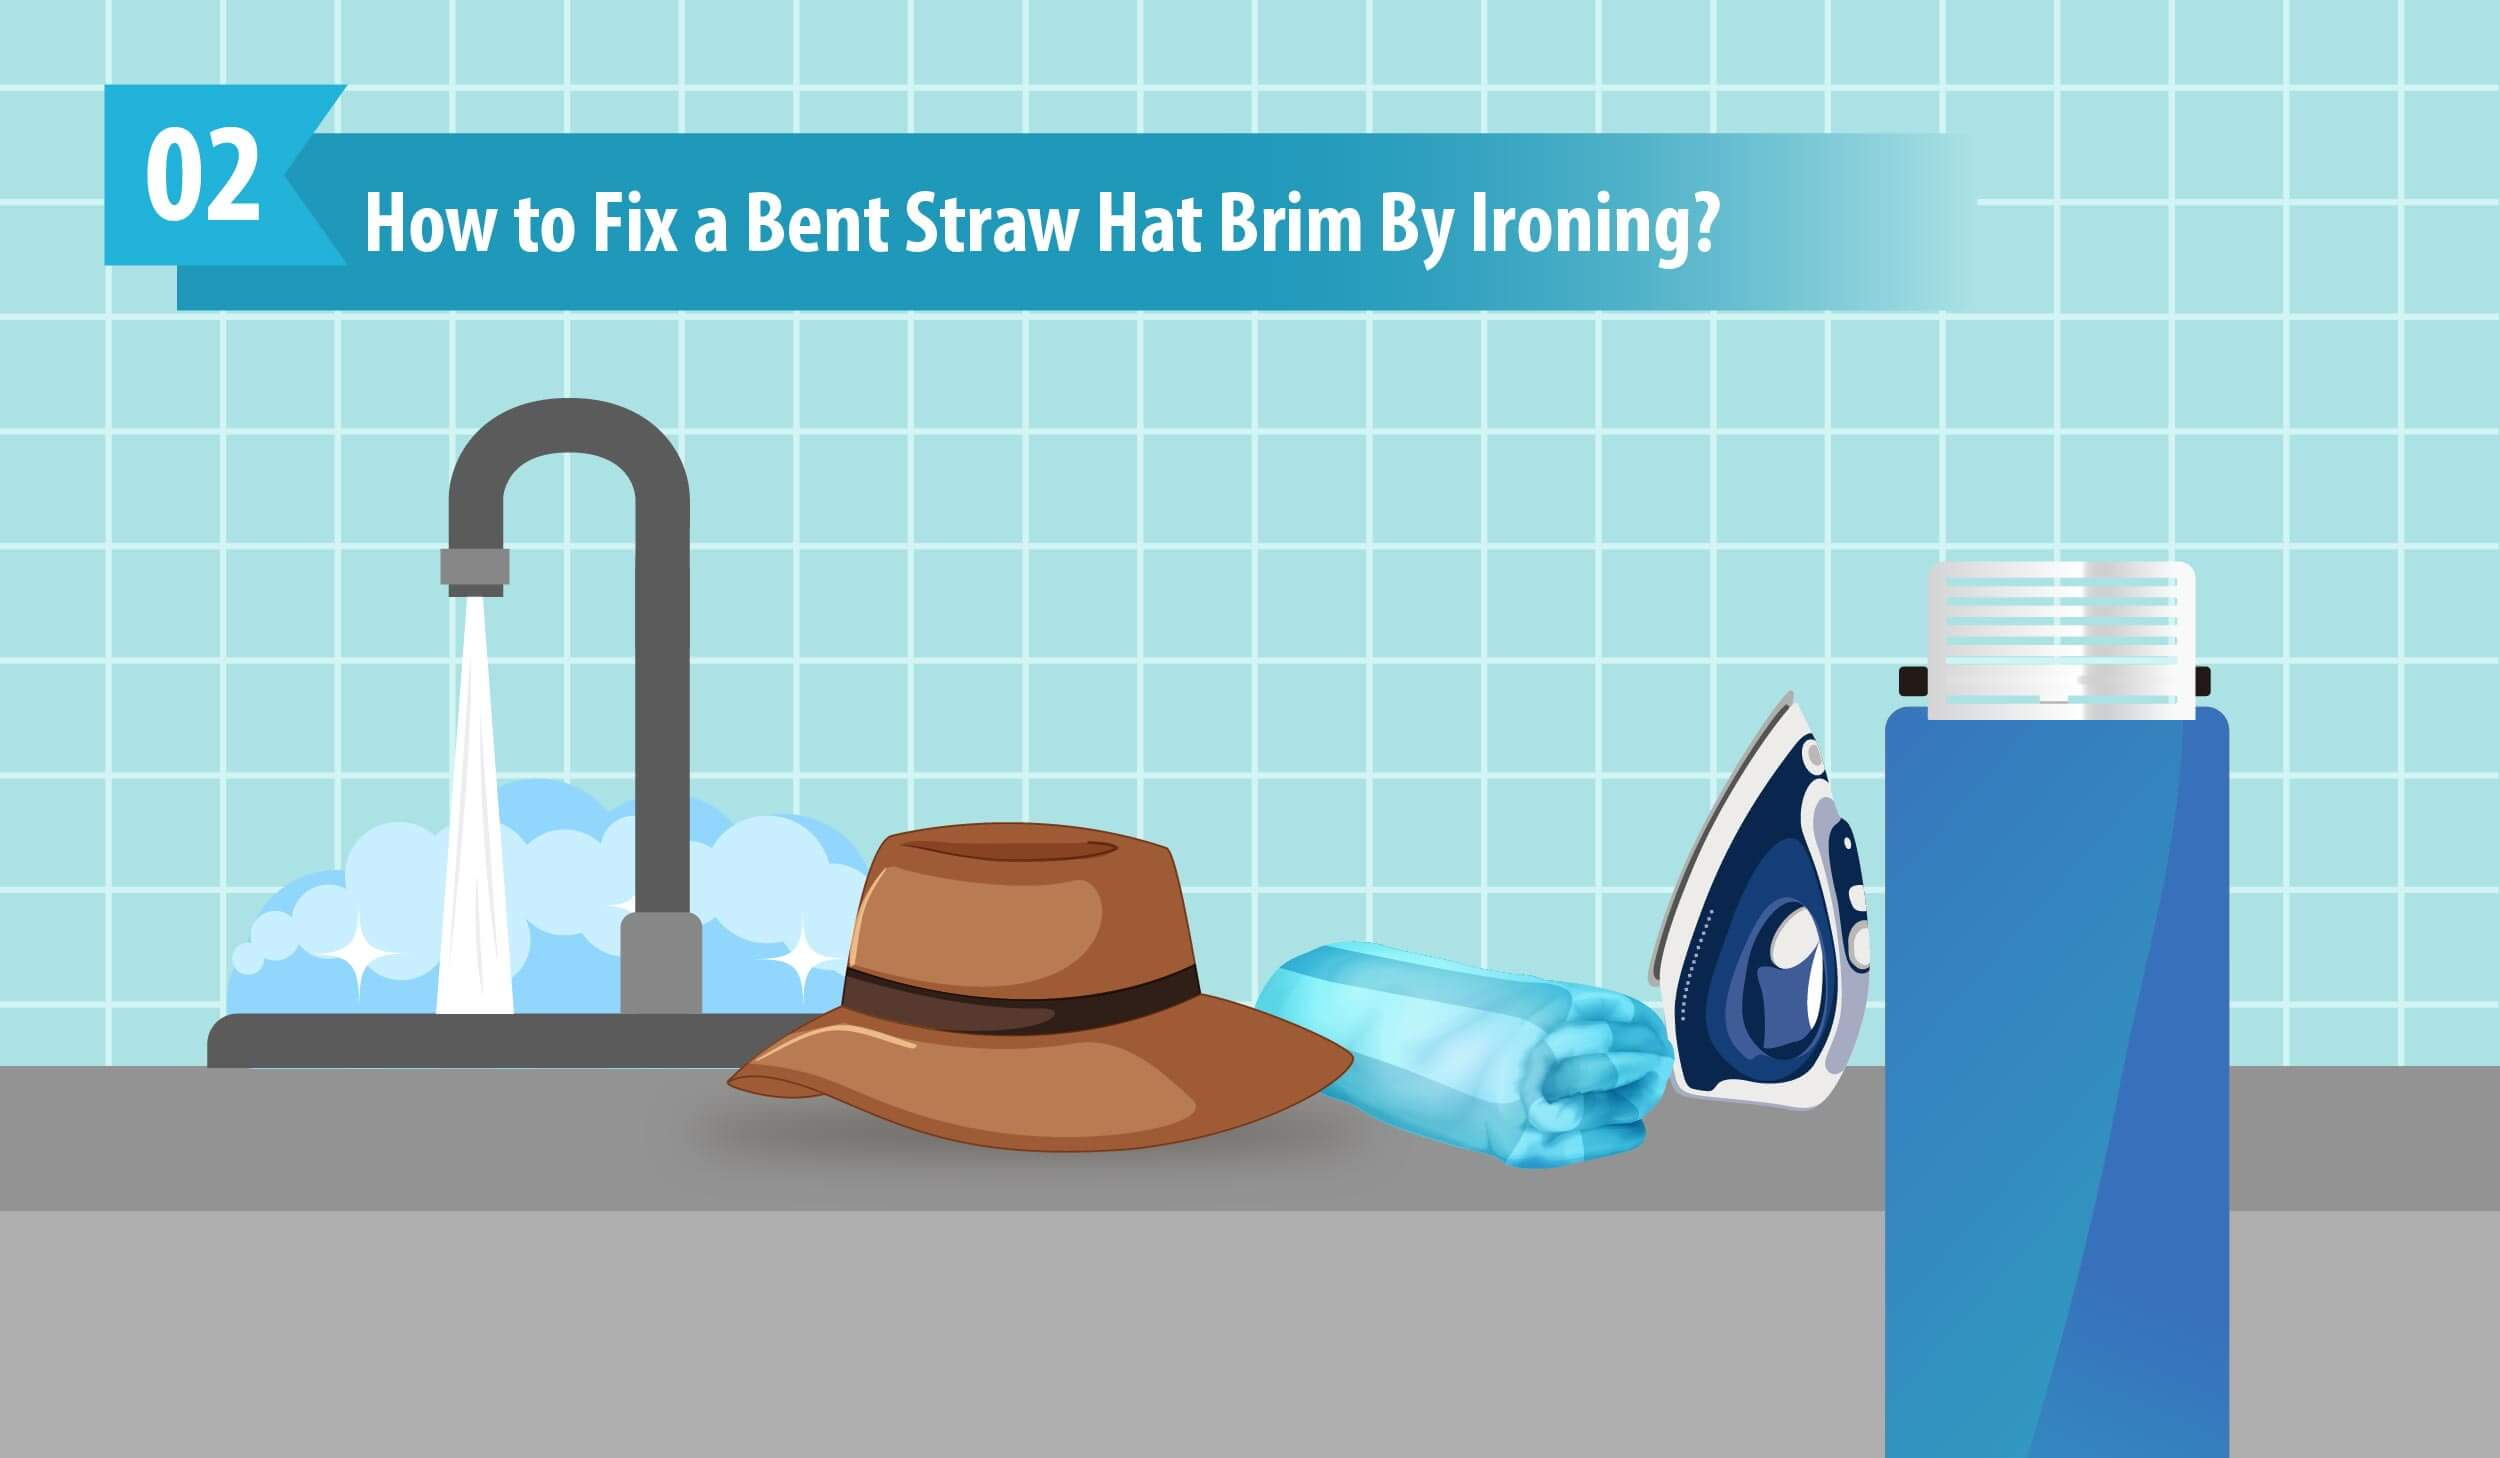 How to Fix a Bent Straw Hat Brim By Ironing